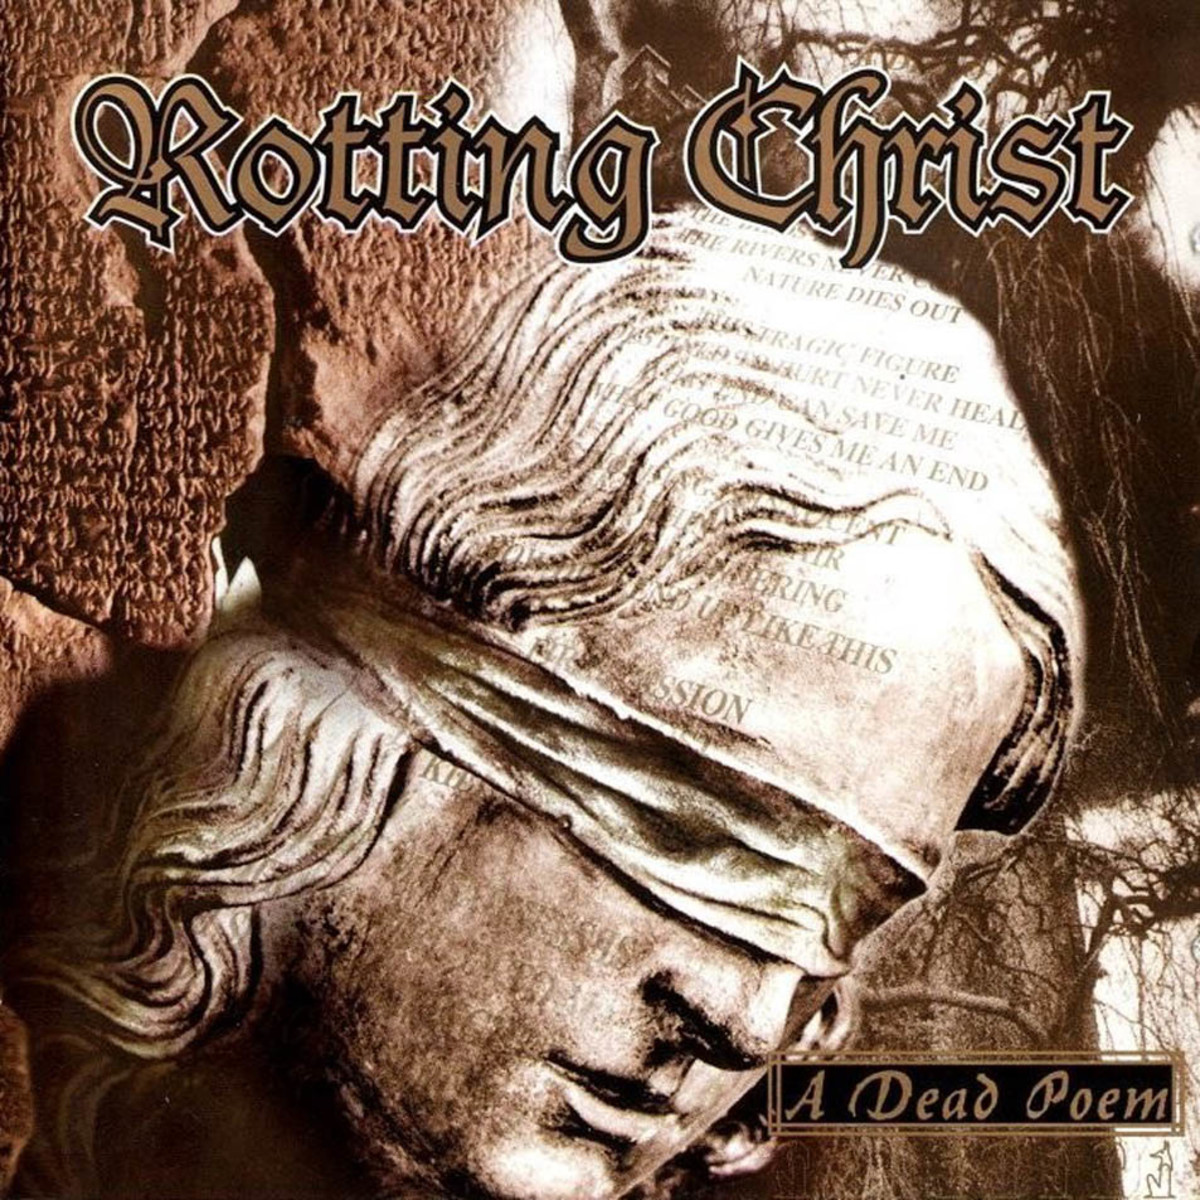 Review: the album A Dead Poem by Greek Black and Gothic metal legends Rotting Christ